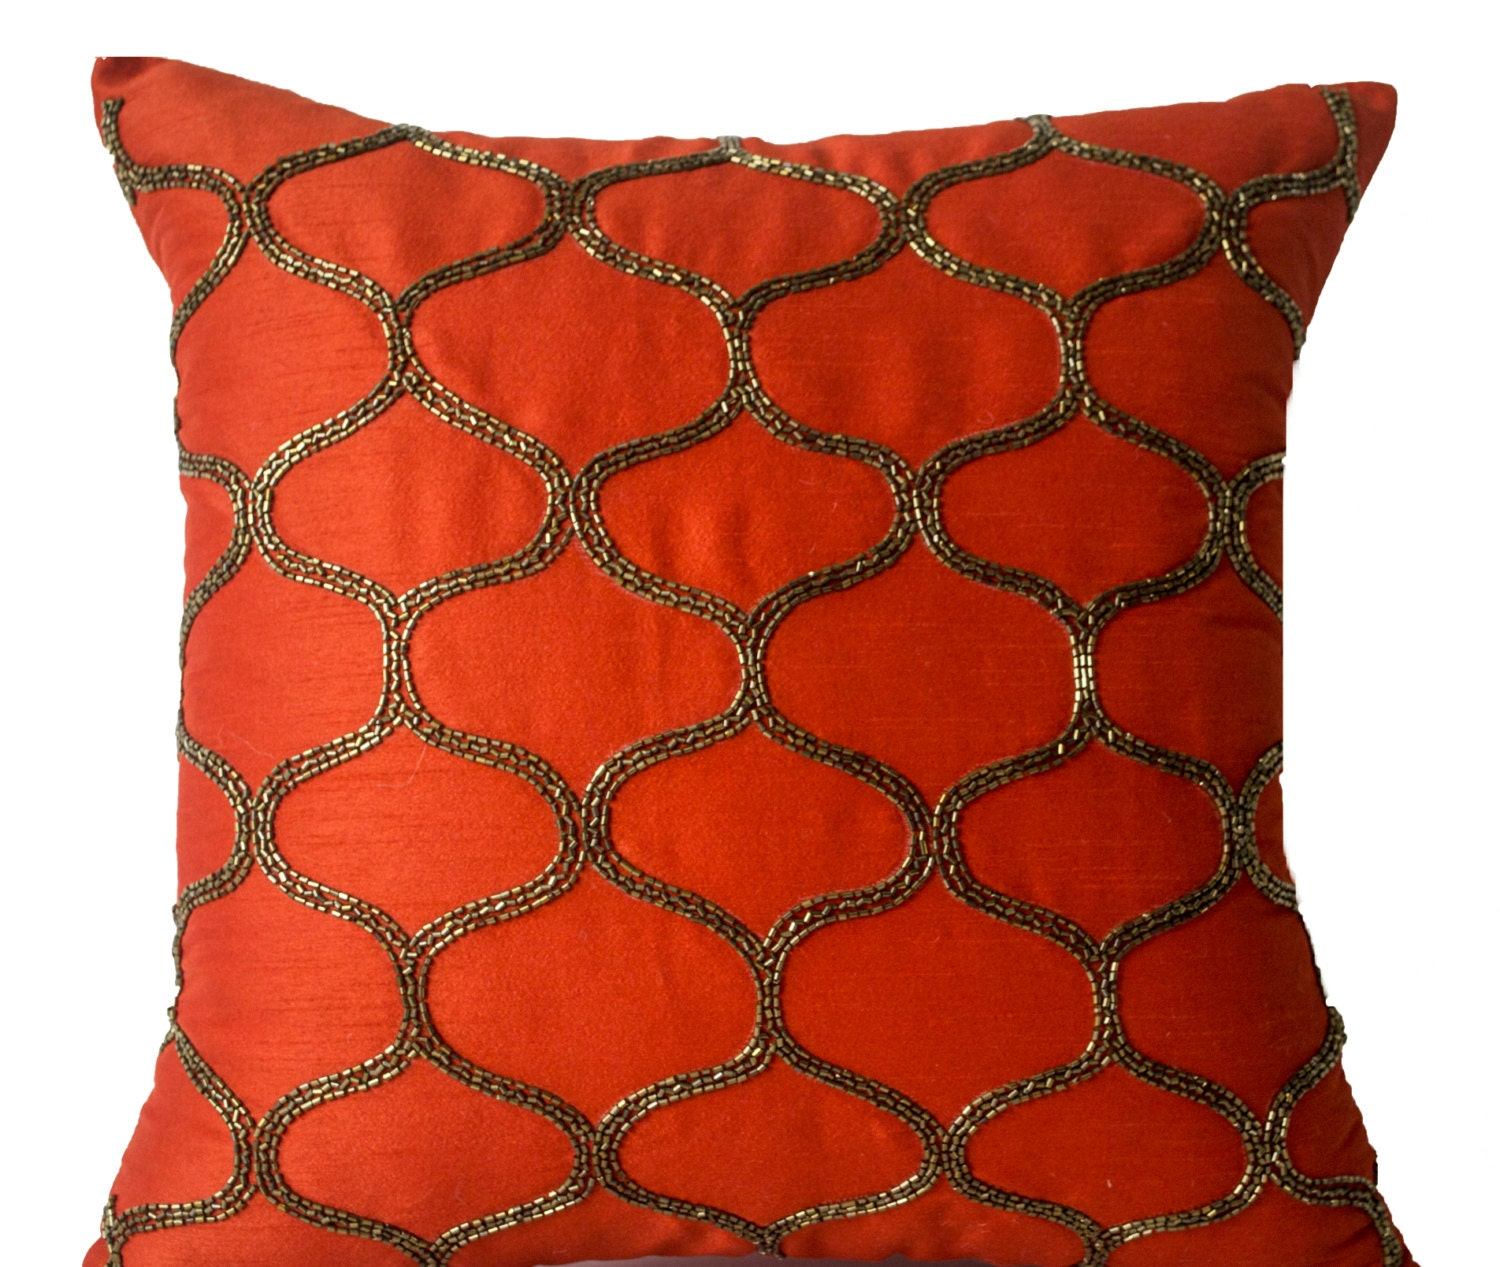 Orange Decorative Pillow Orange Pillow Orange Silk Pillow